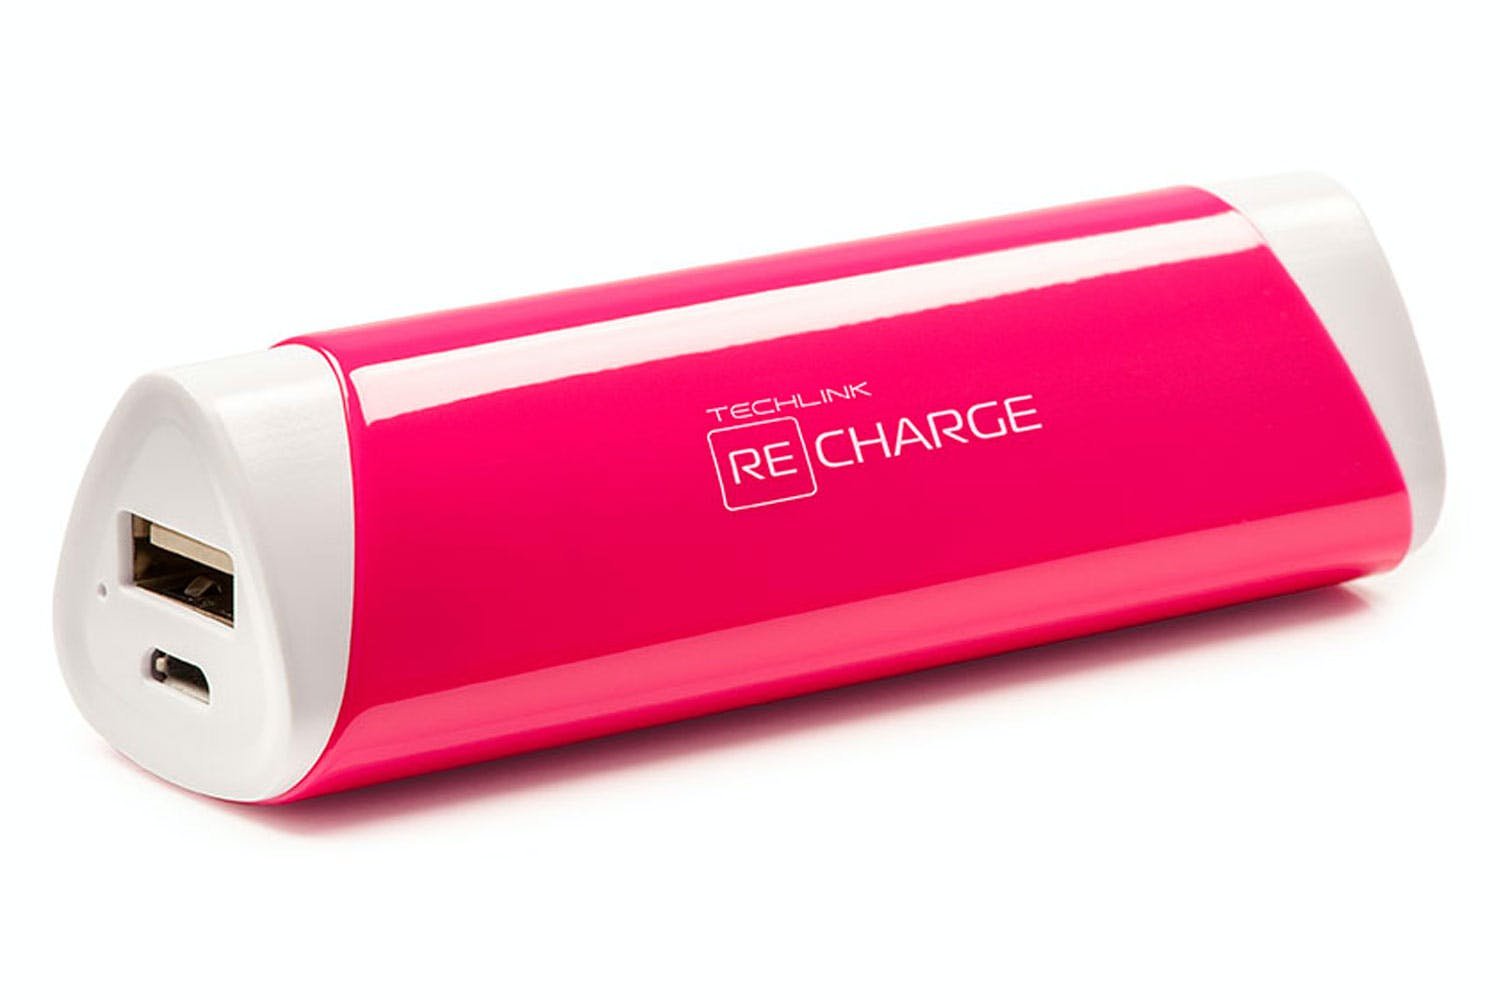 Techlink Recharge 2,600mAh Battery Pack | Pink